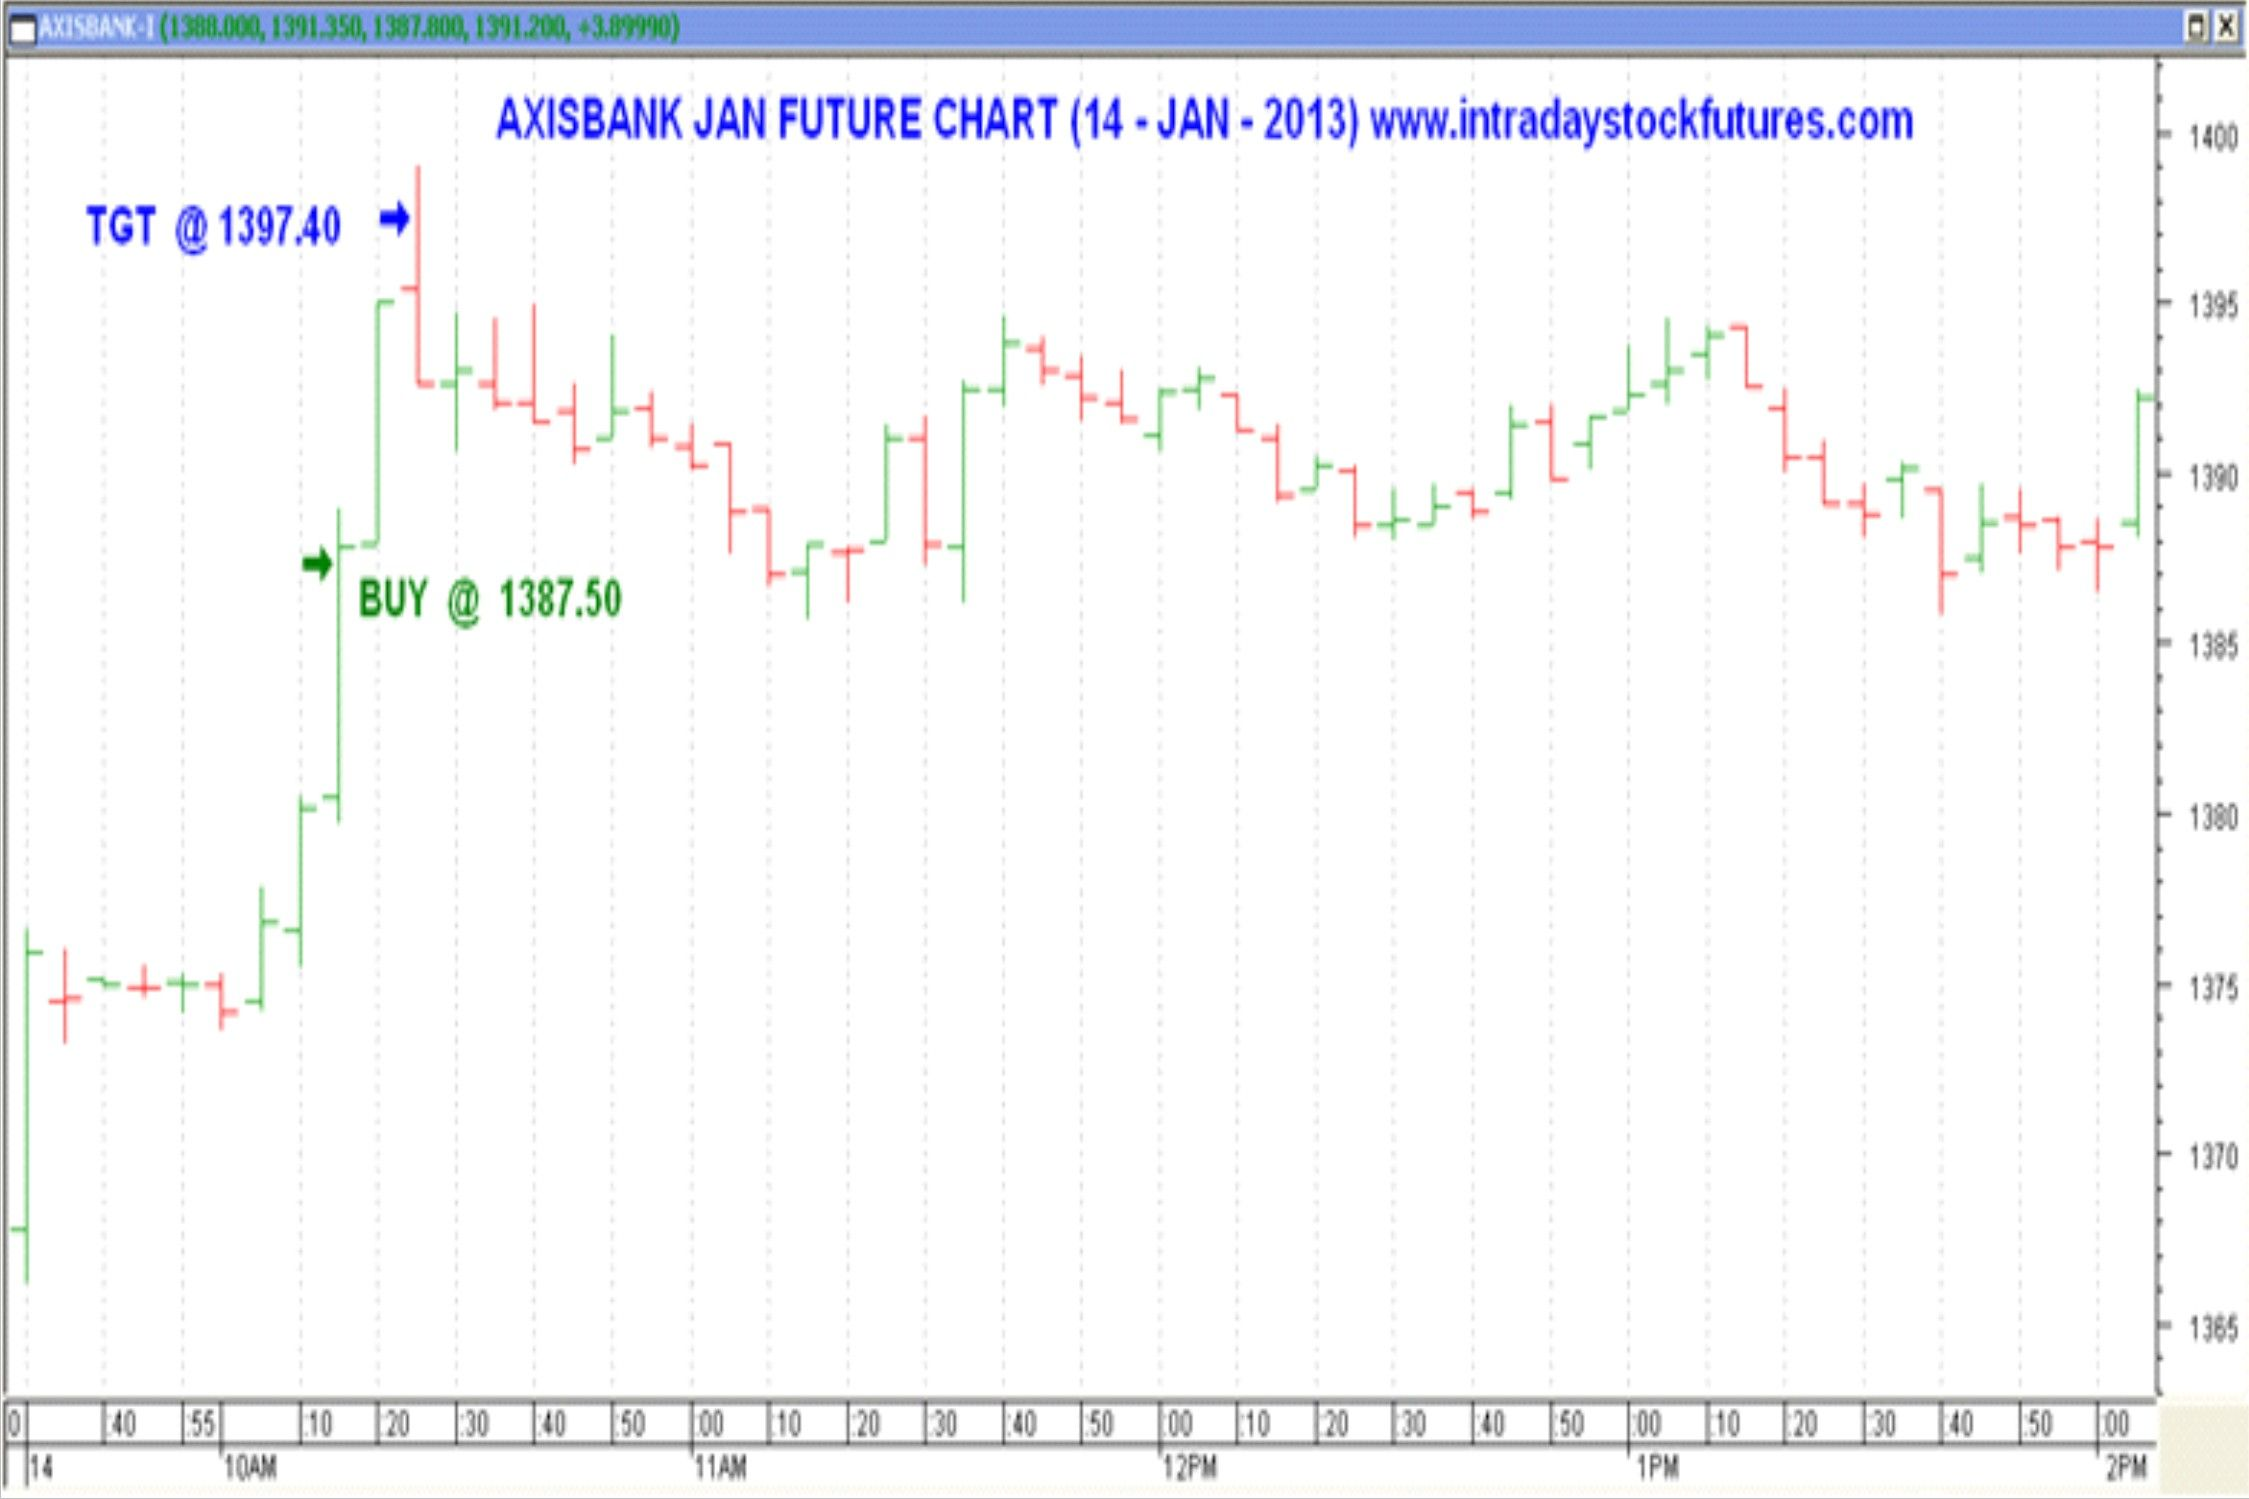 We Were Technical Analyst Team We Were Experts In Intraday Trading Tips For Nse Stock Market Our Experts Provide Stock Futures Intraday Trading Stock Market